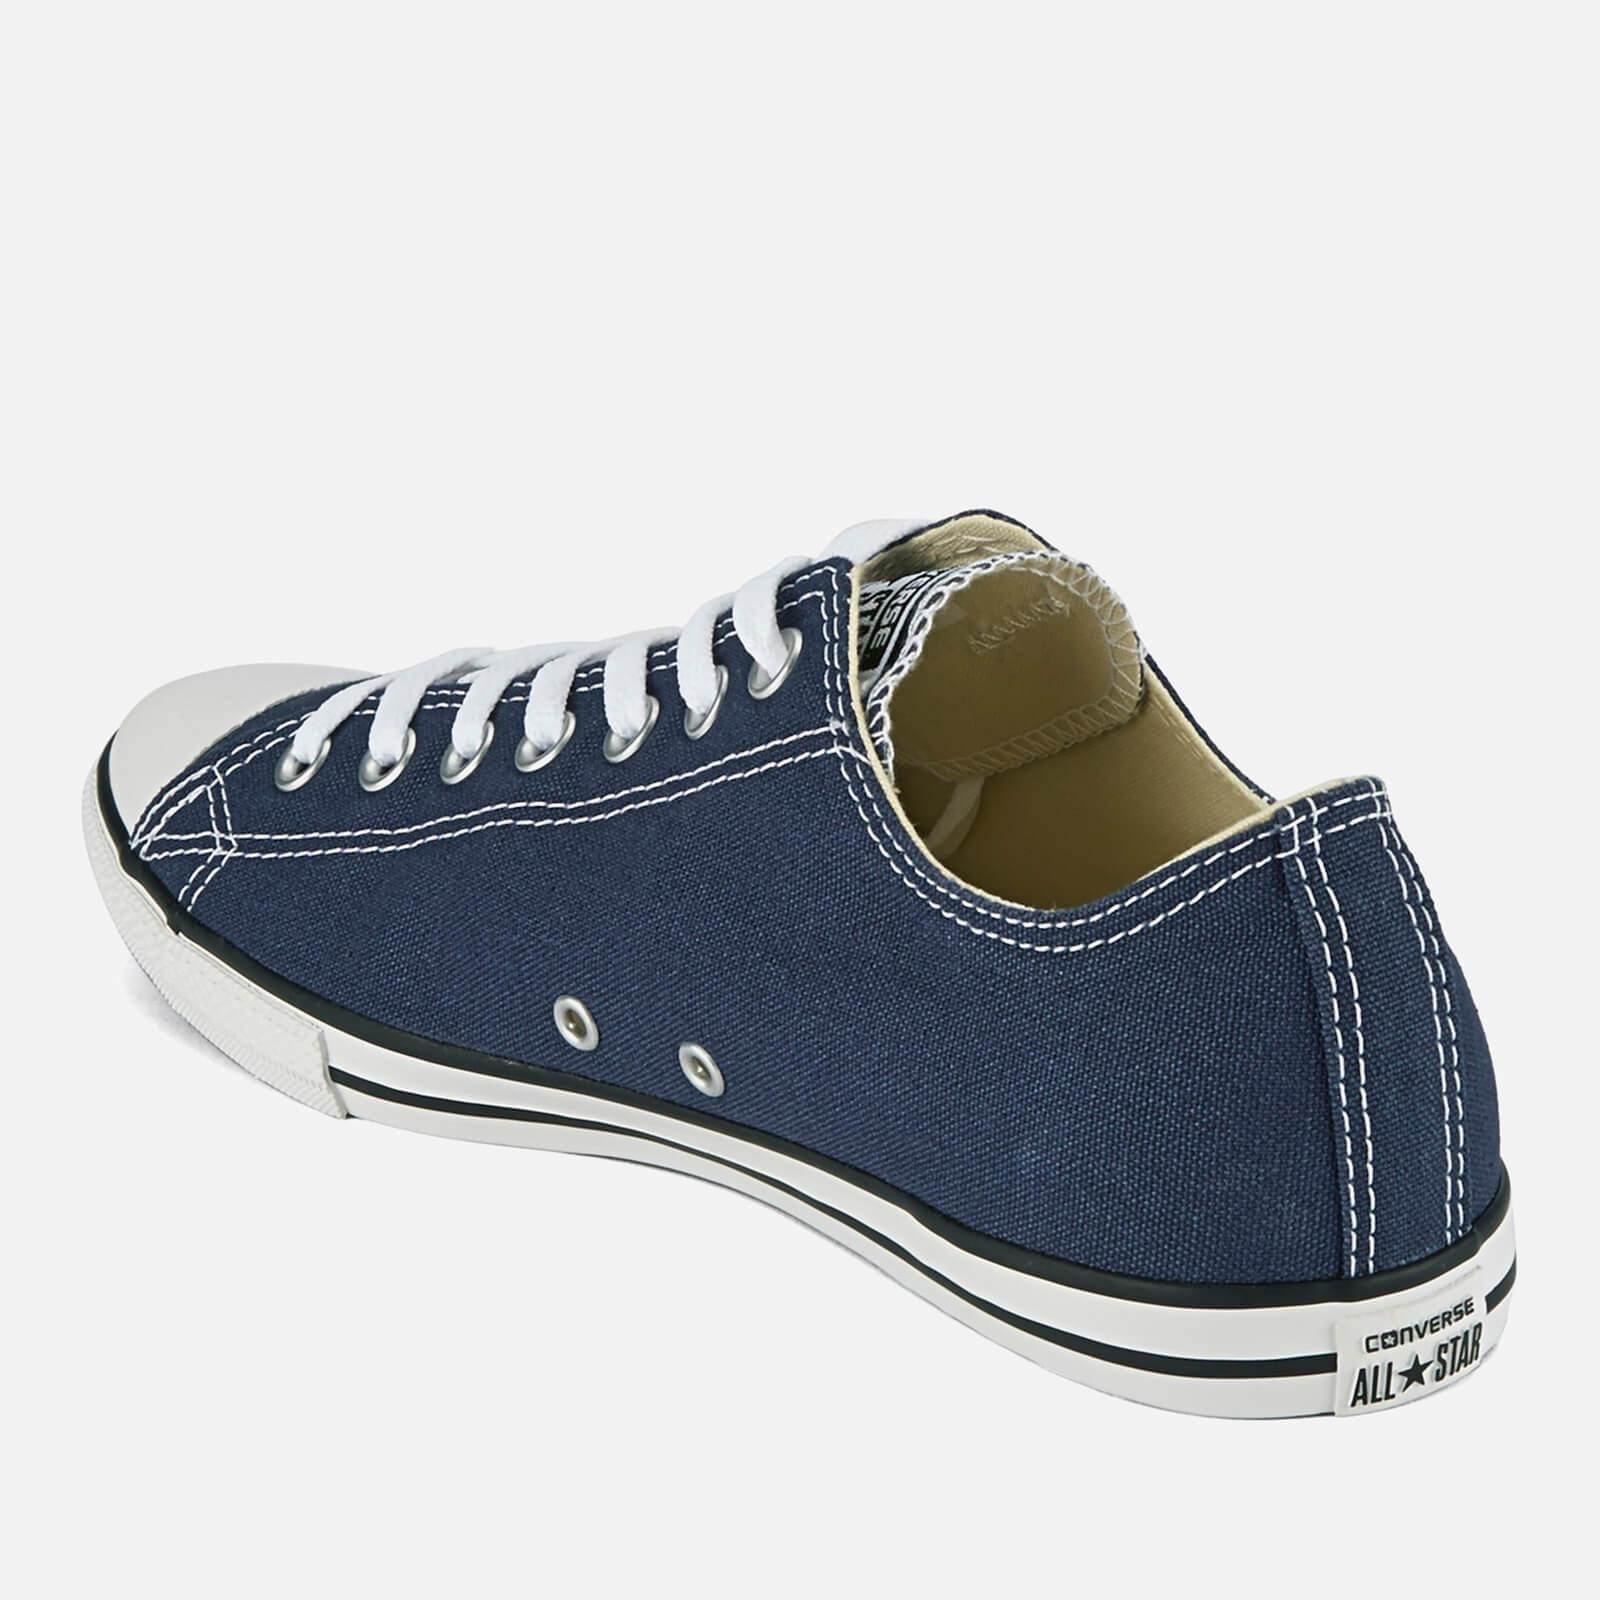 purchase cheap online Converse All Star Lean Plimsolls In Black 142274C cheap official discount wholesale price MLUyP7PNq